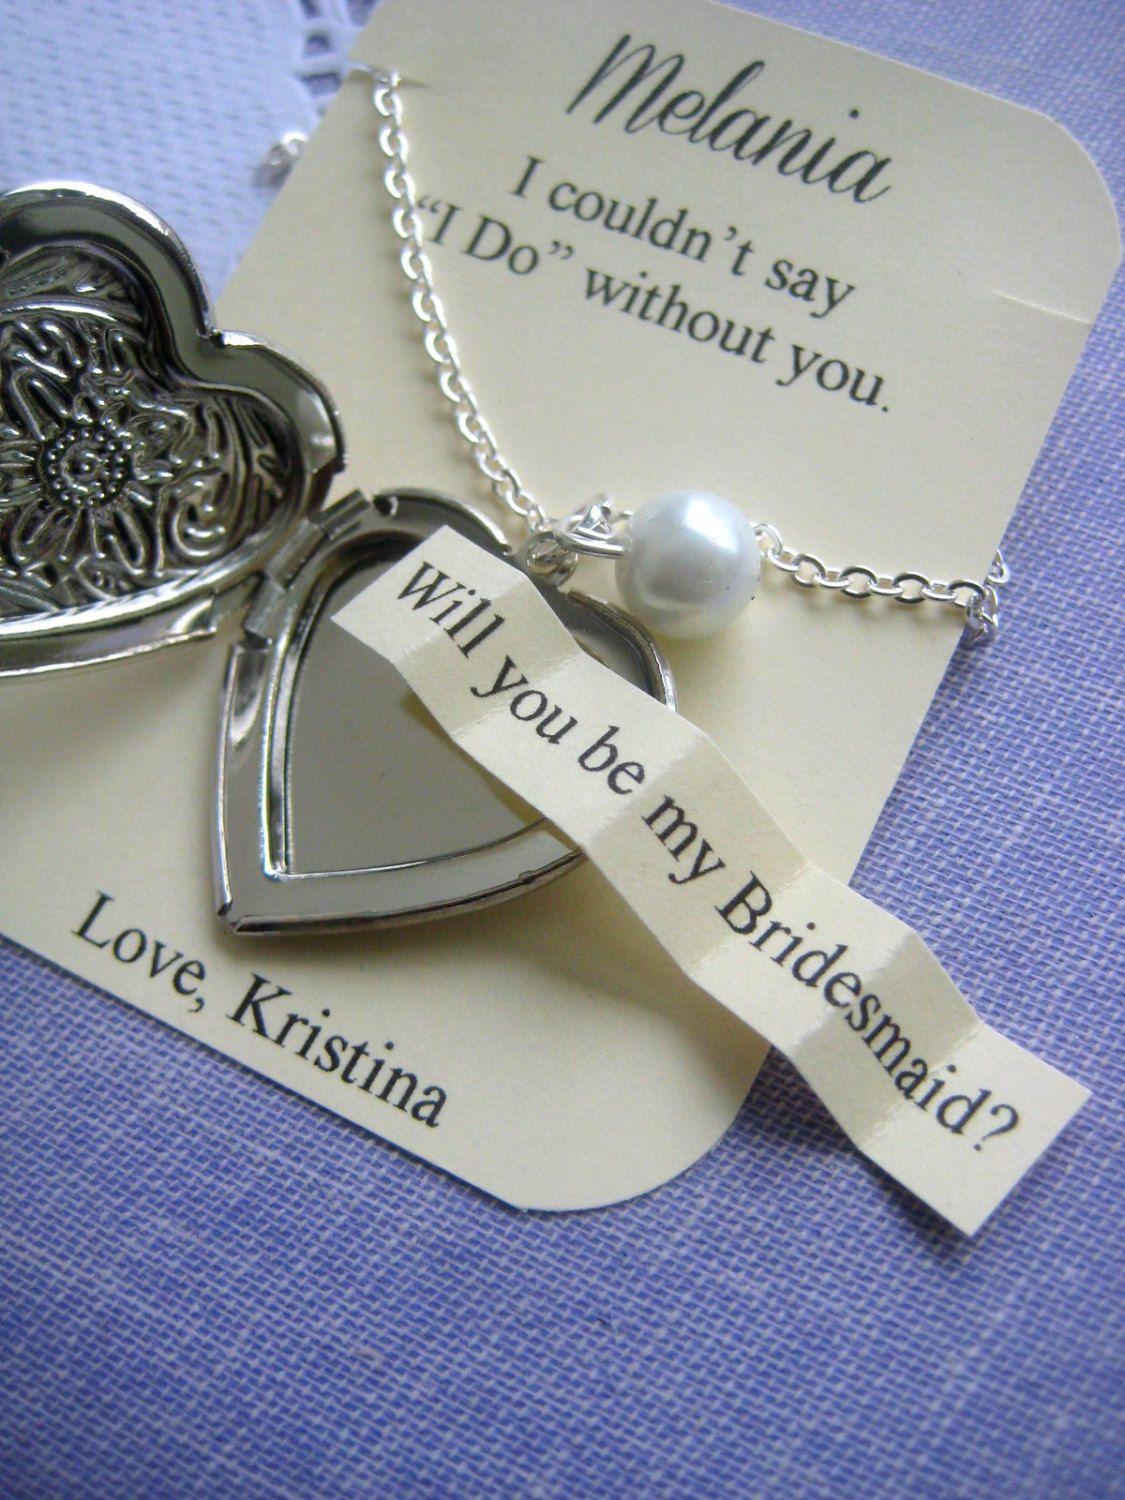 Ask Bridesmaids heart locket necklace choose pearl by buysomelove, $15.00 생중계바카라 생중계바카라 생중계바카라 생중계바카라 생중계바카라 생중계바카라 생중계바카라 생중계바카라 생중계바카라 생중계바카라 생중계바카라 생중계바카라 생중계바카라 생중계바카라 생중계바카라 생중계바카라 생중계바카라 생중계바카라 생중계바카라 생중계바카라 생중계바카라 생중계바카라